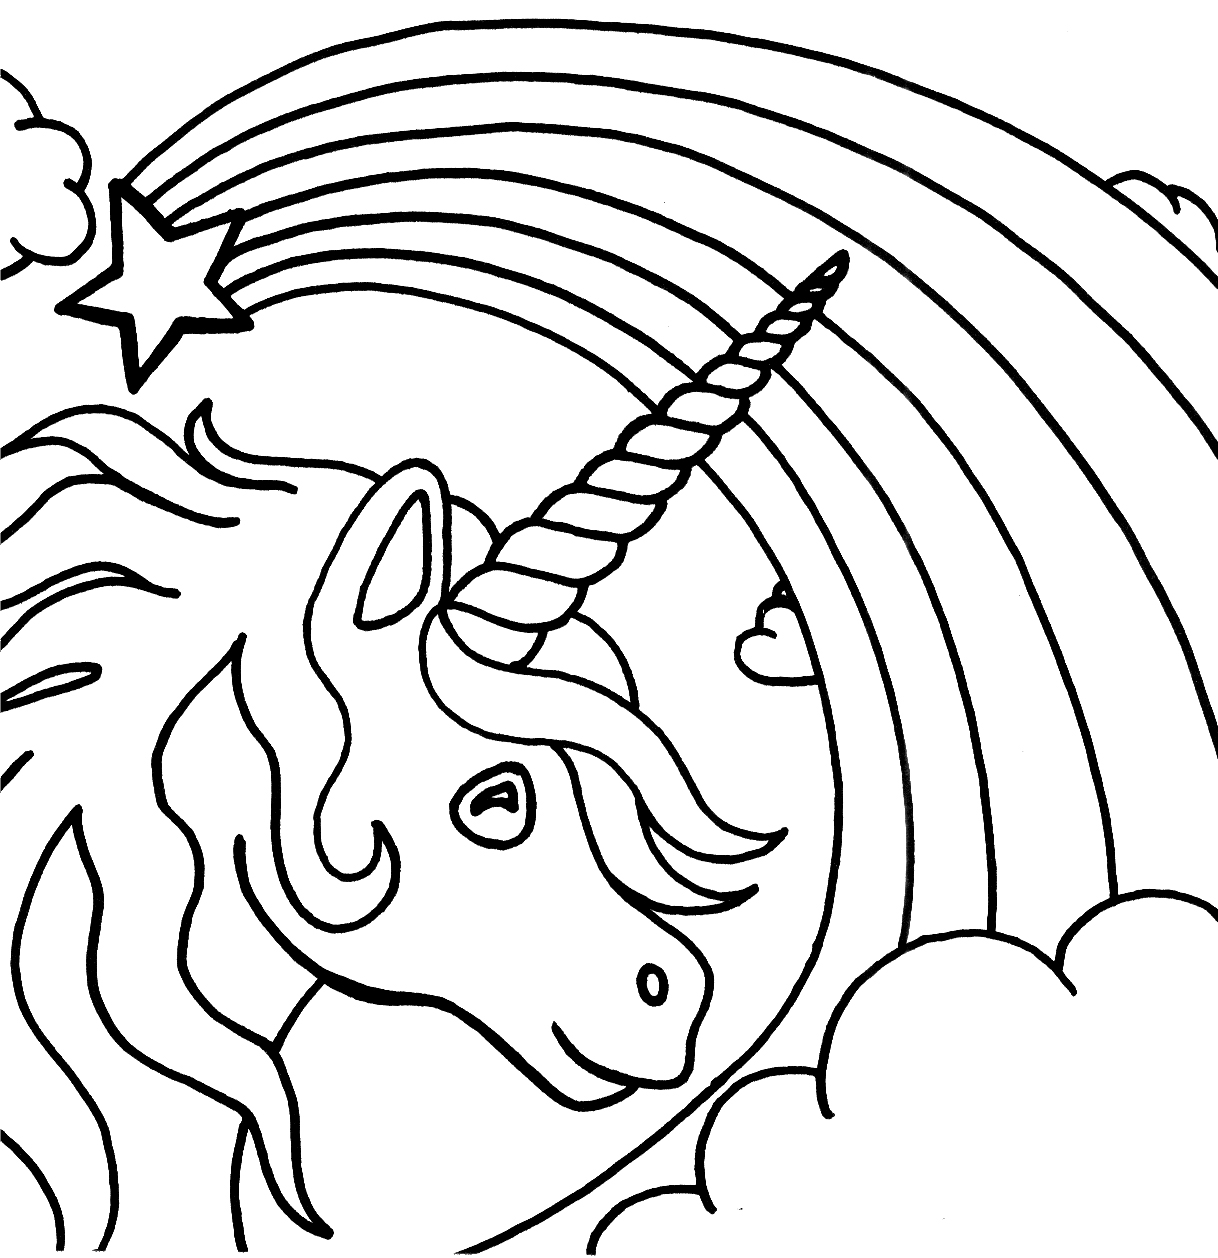 Children Coloring Pages at GetDrawings.com | Free for ...